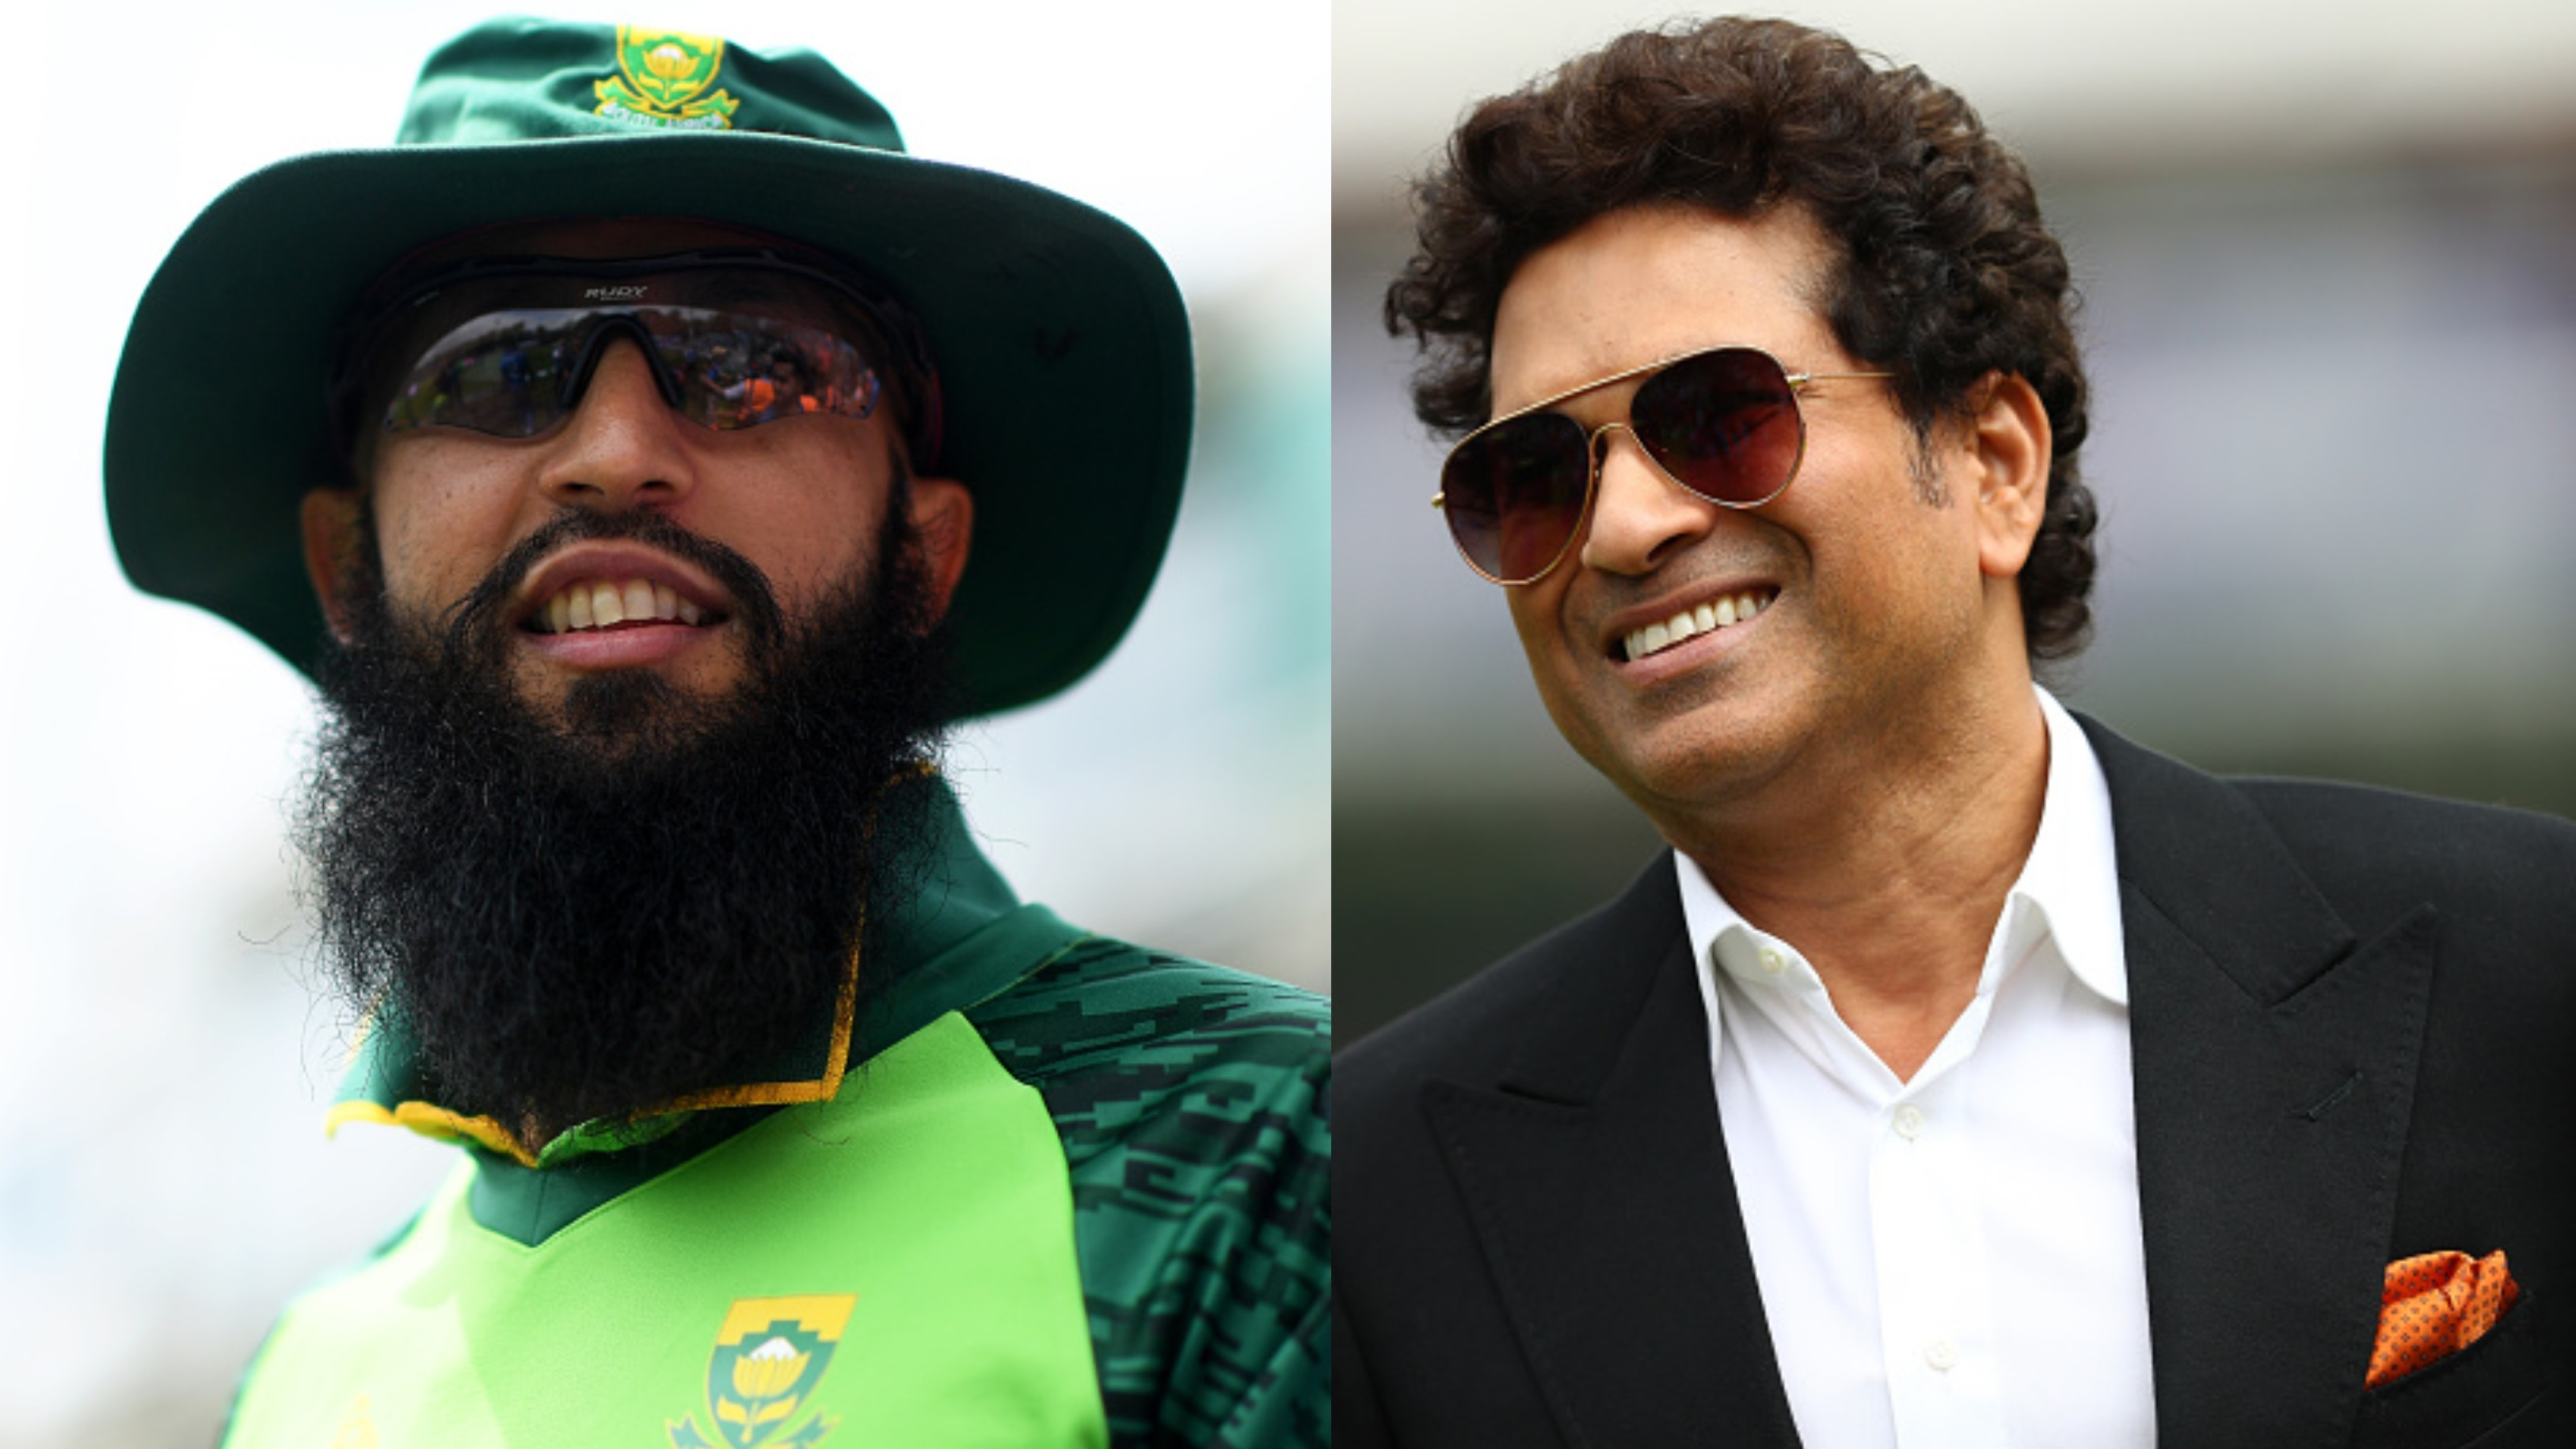 Hashim Amla thanks Sachin Tendulkar for warm words after his retirement